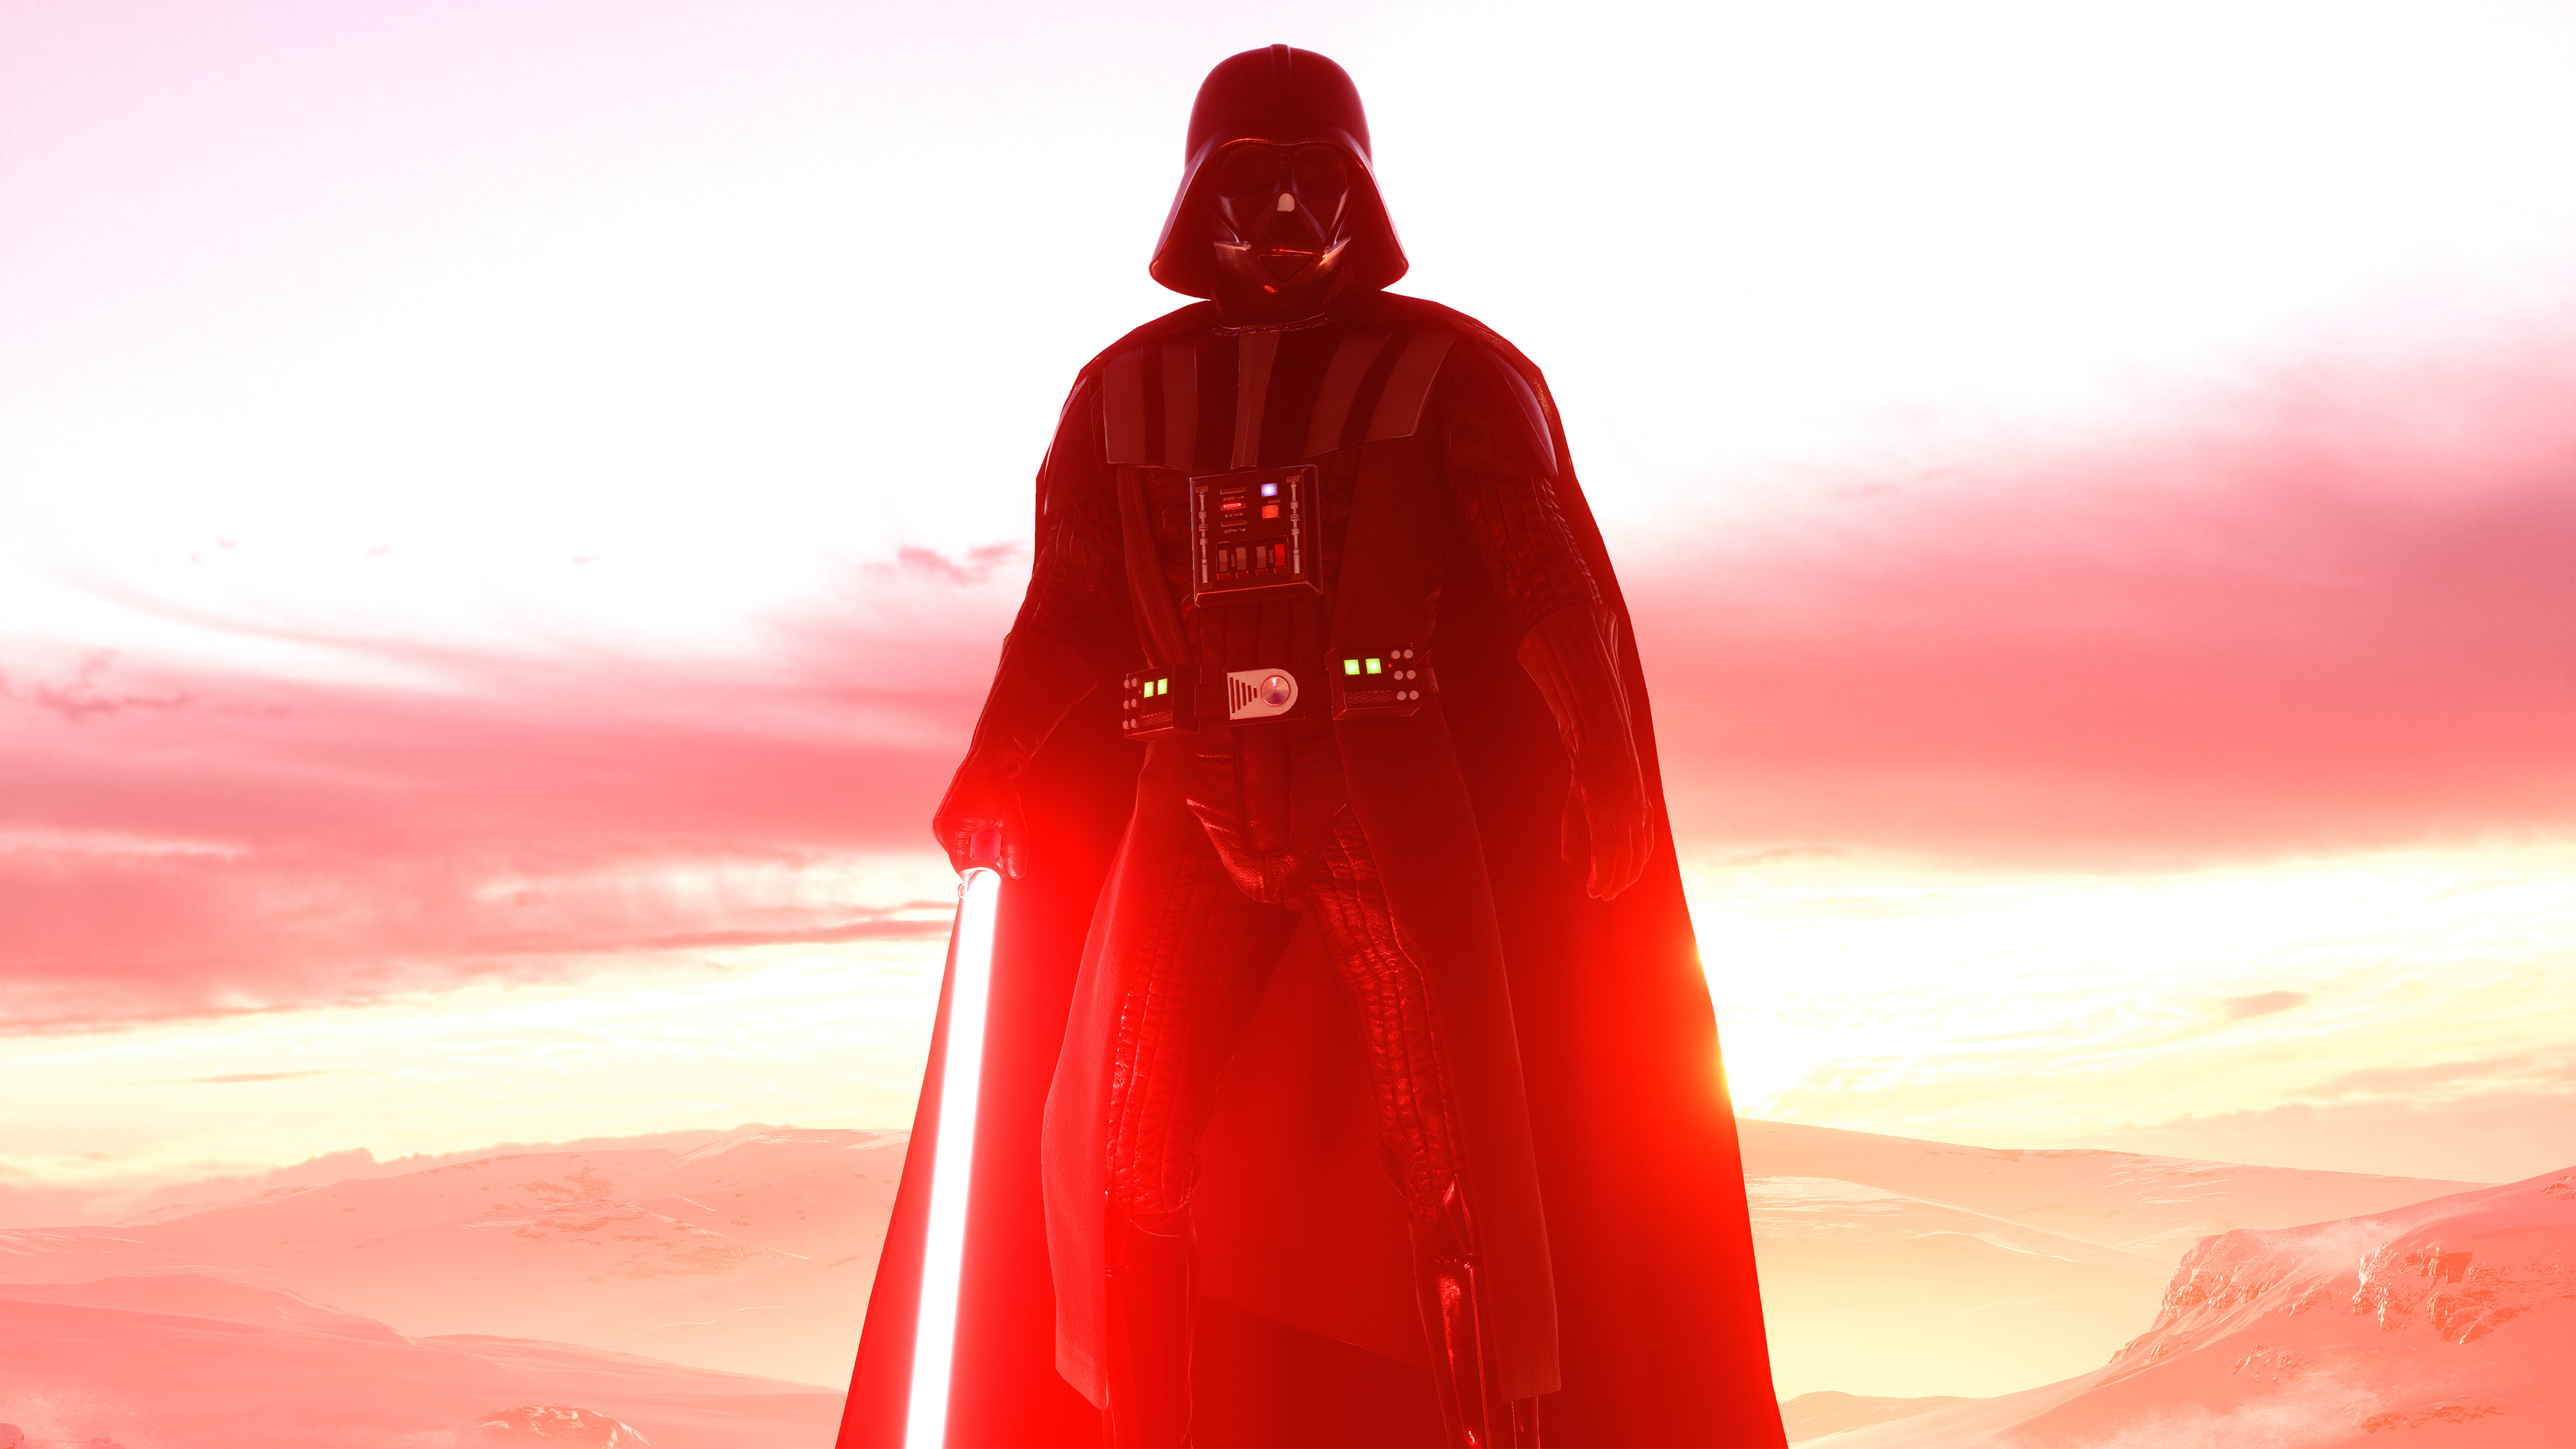 Darth Vader Star Wars Battlefront 2 4k Hd Games 4k Wallpapers Images Backgrounds Photos And Pictures